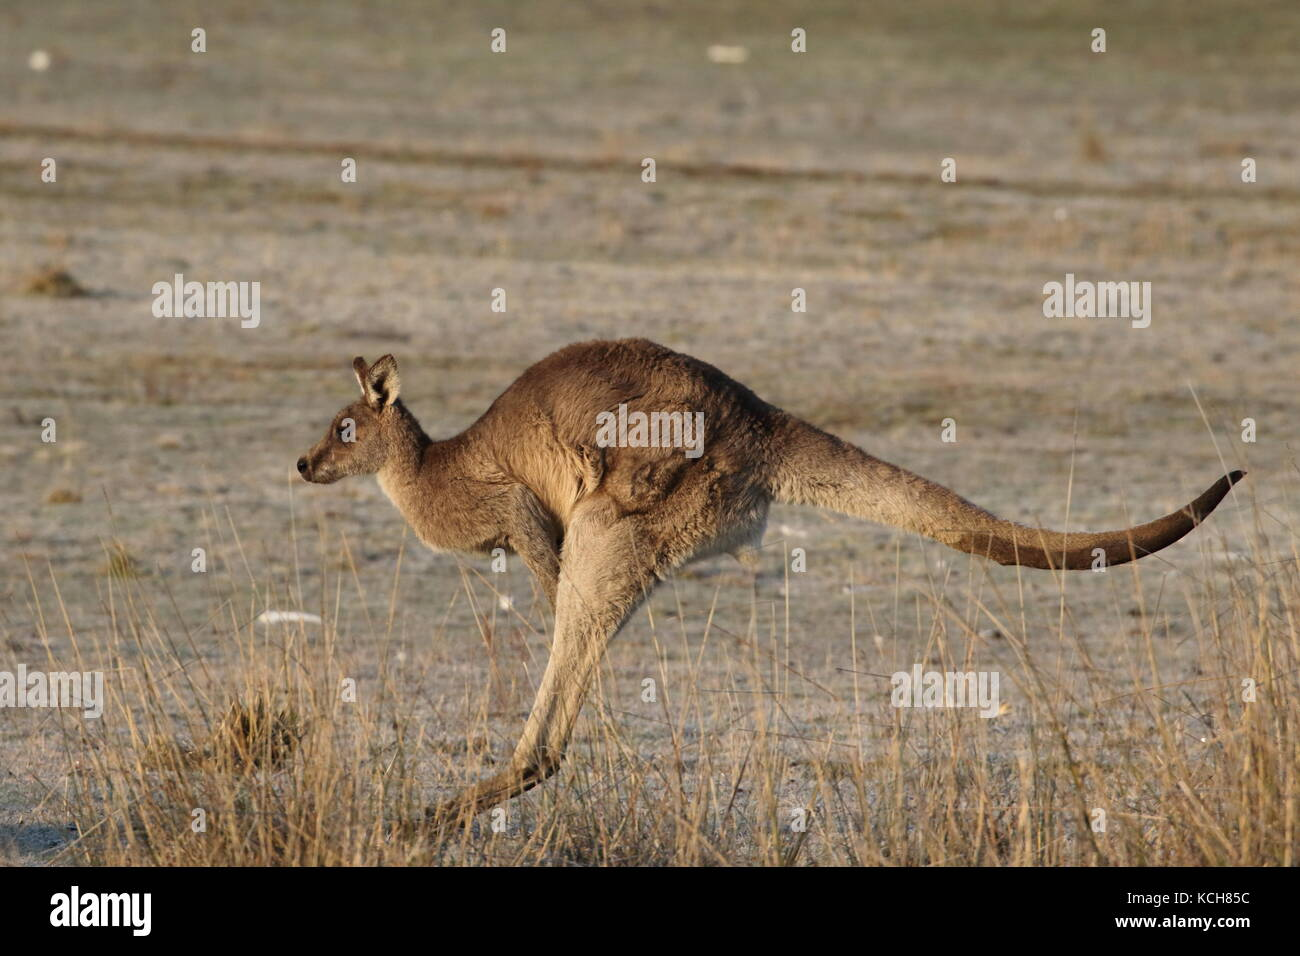 eastern grey kangaroo hopping across a field - Stock Image